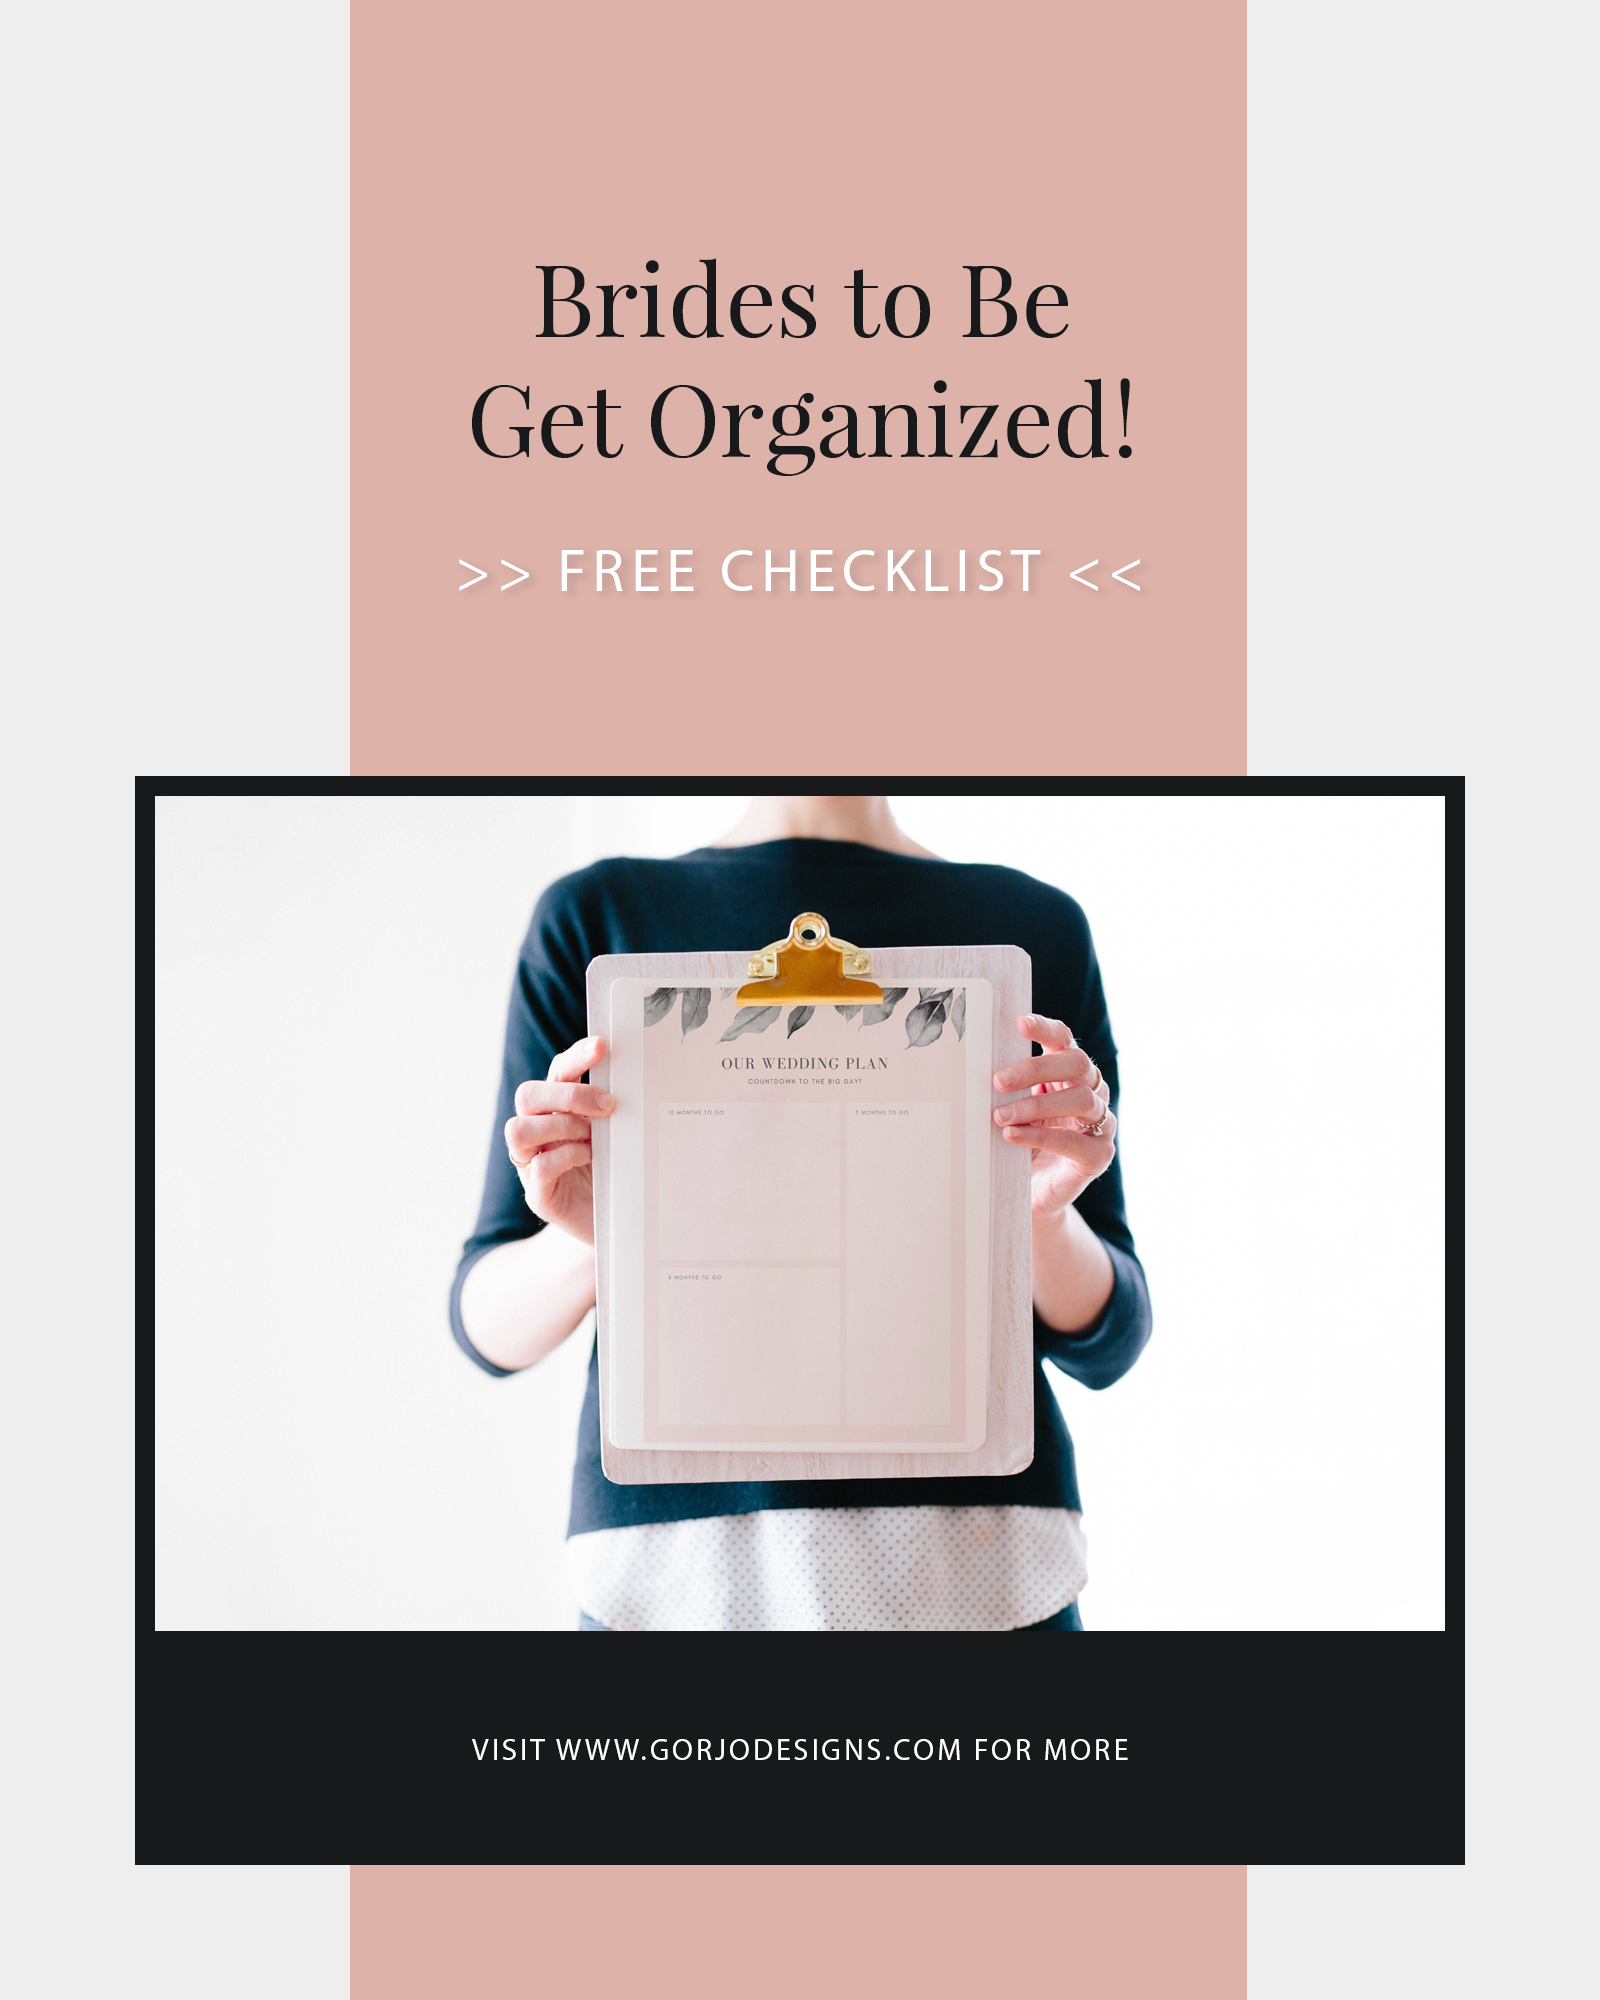 Pink vertical banner with photo of woman holding a clipboard with pink wedding checklist on it - brides to be get organized free checklist gorjo designs